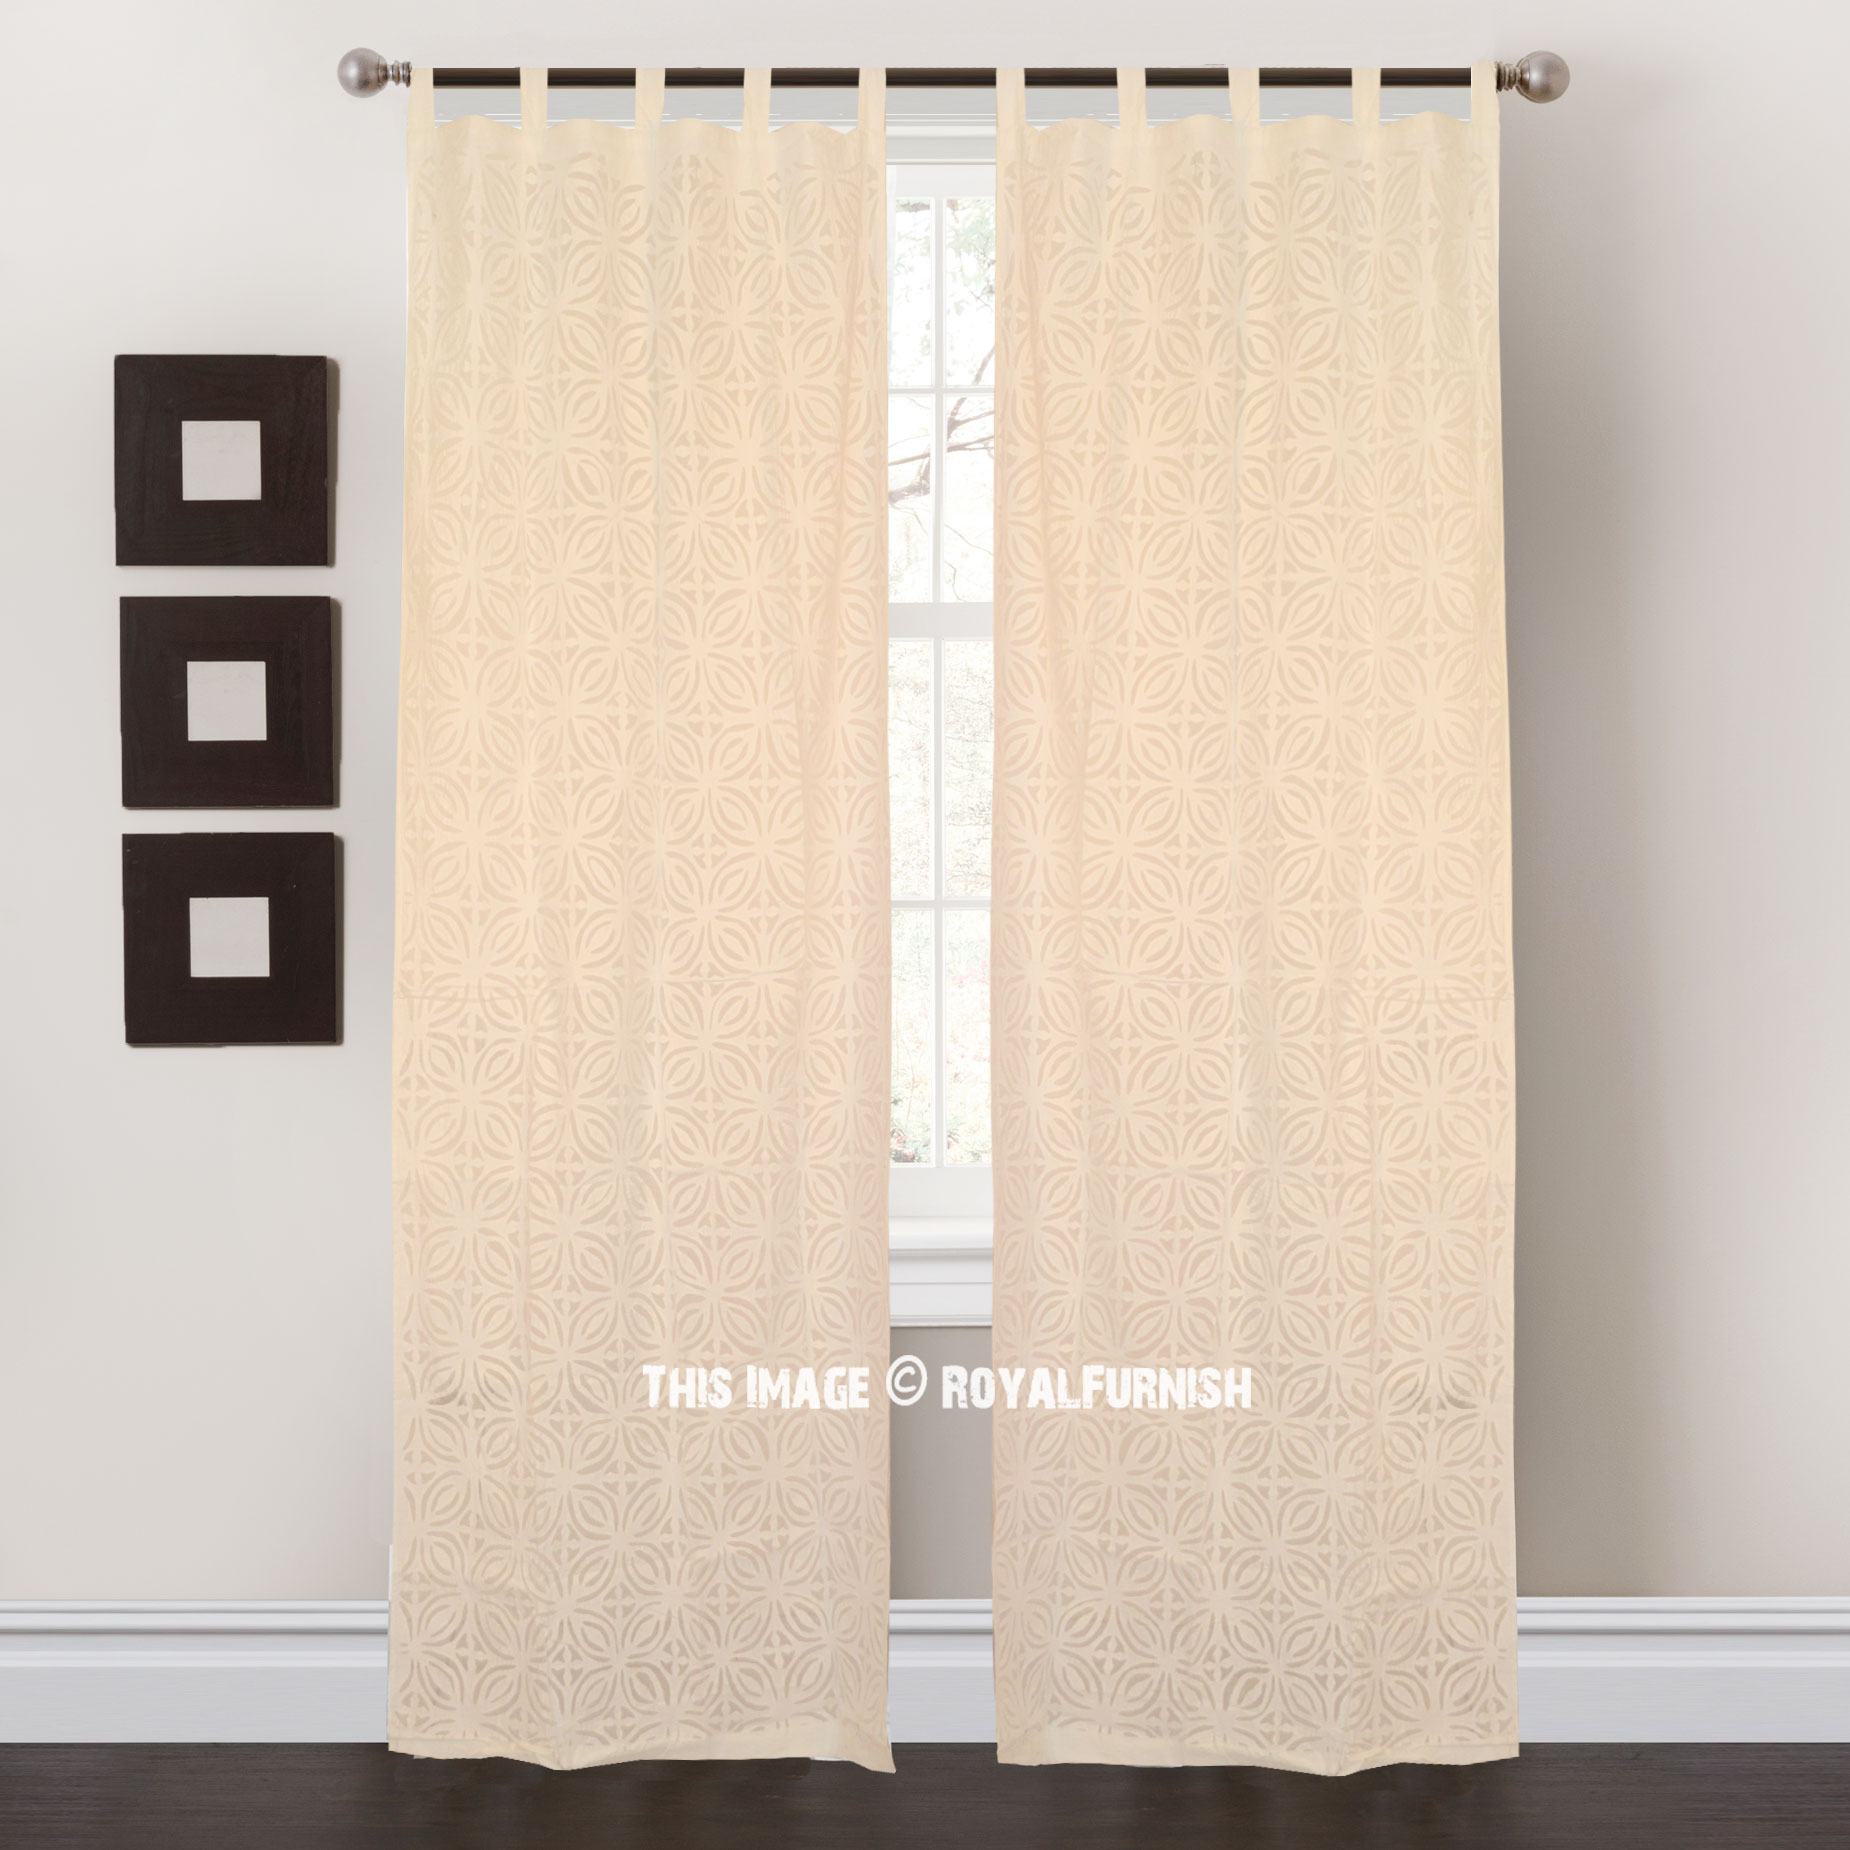 White Cutwork Design Sheer Cotton Curtains Set Of 2 Royalfurnish Com